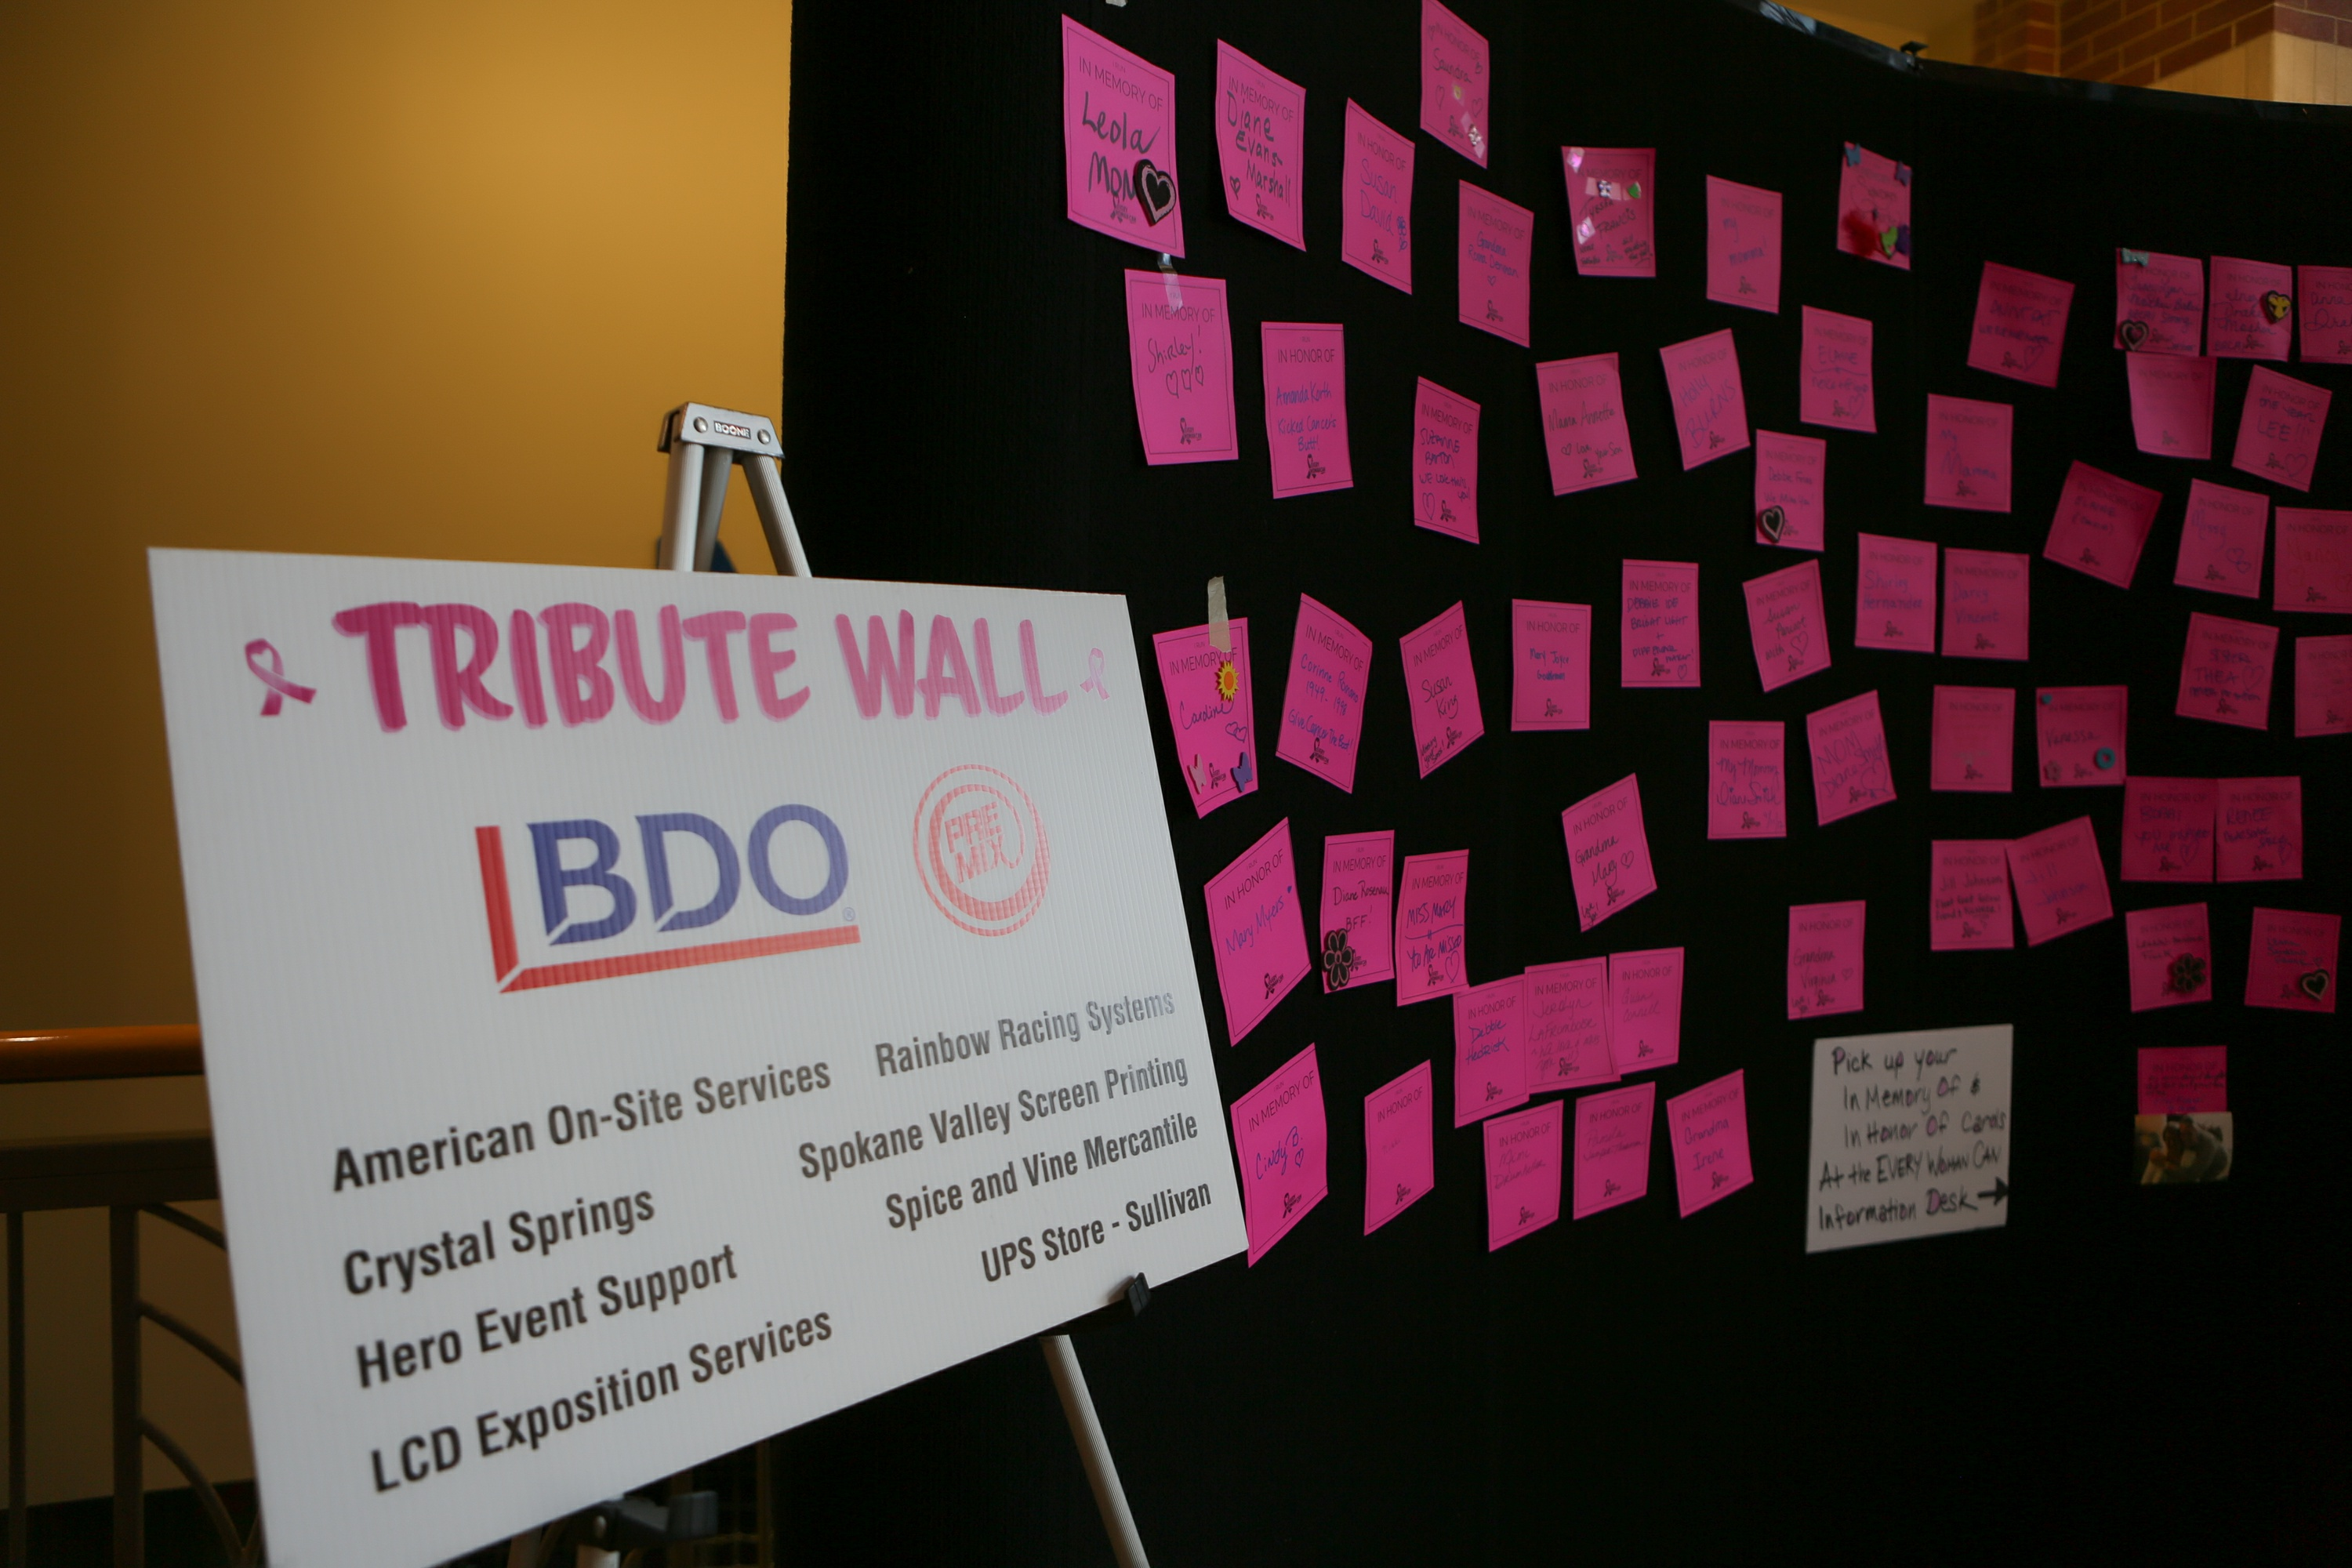 BDO Tribute Wall from Skyline INW